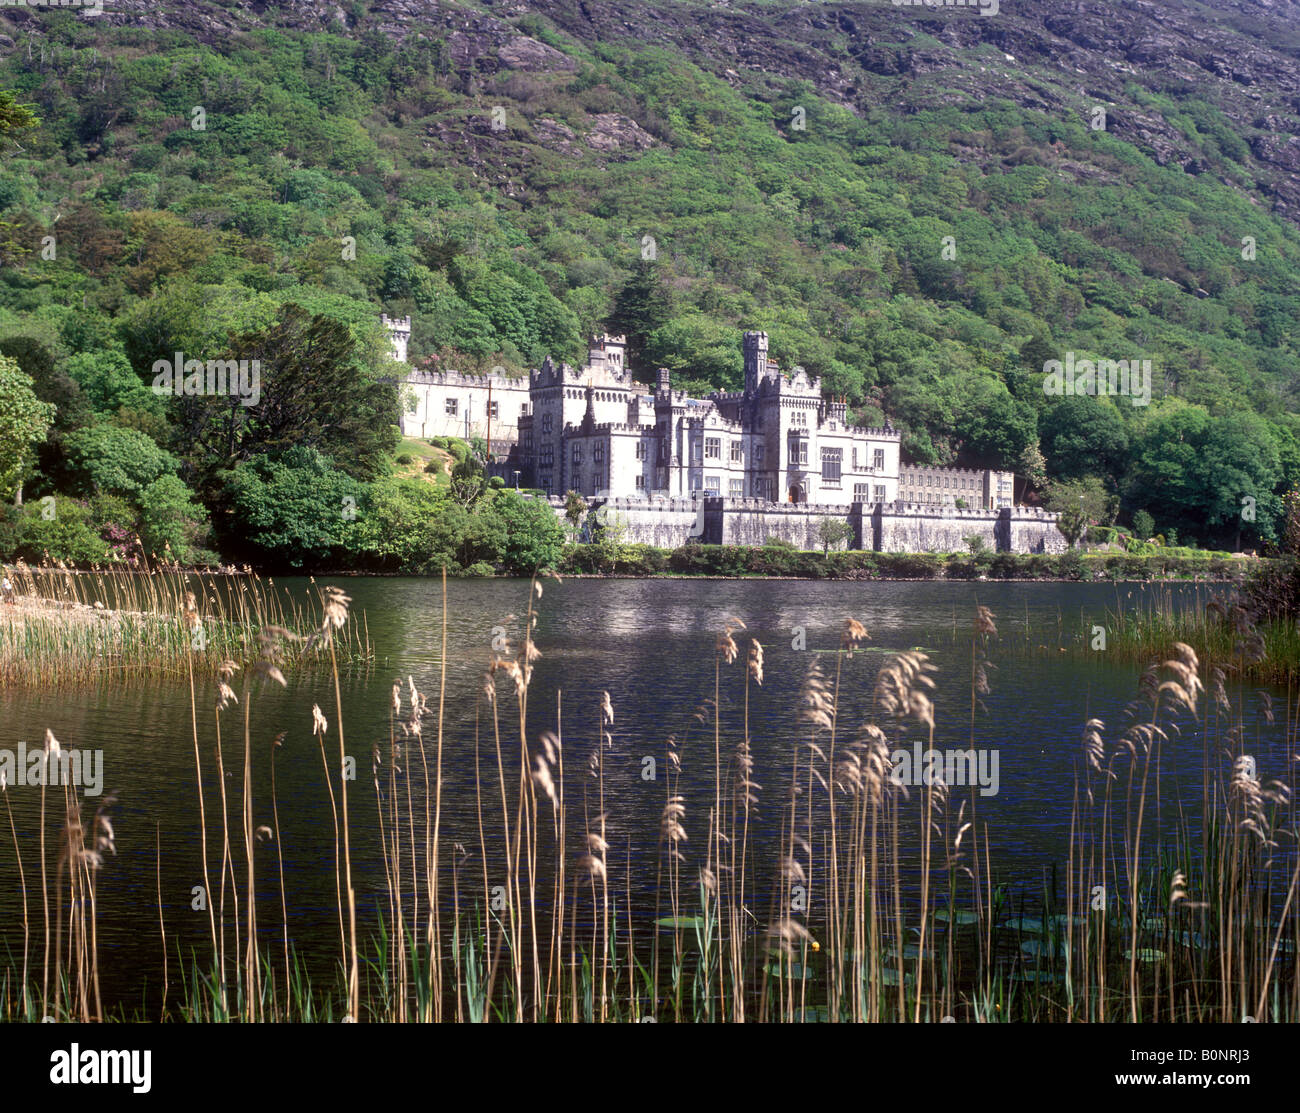 Kylemore Abbey - A magnificent late 19th century mansion on Kylemore Lough  in Connemara - Stock